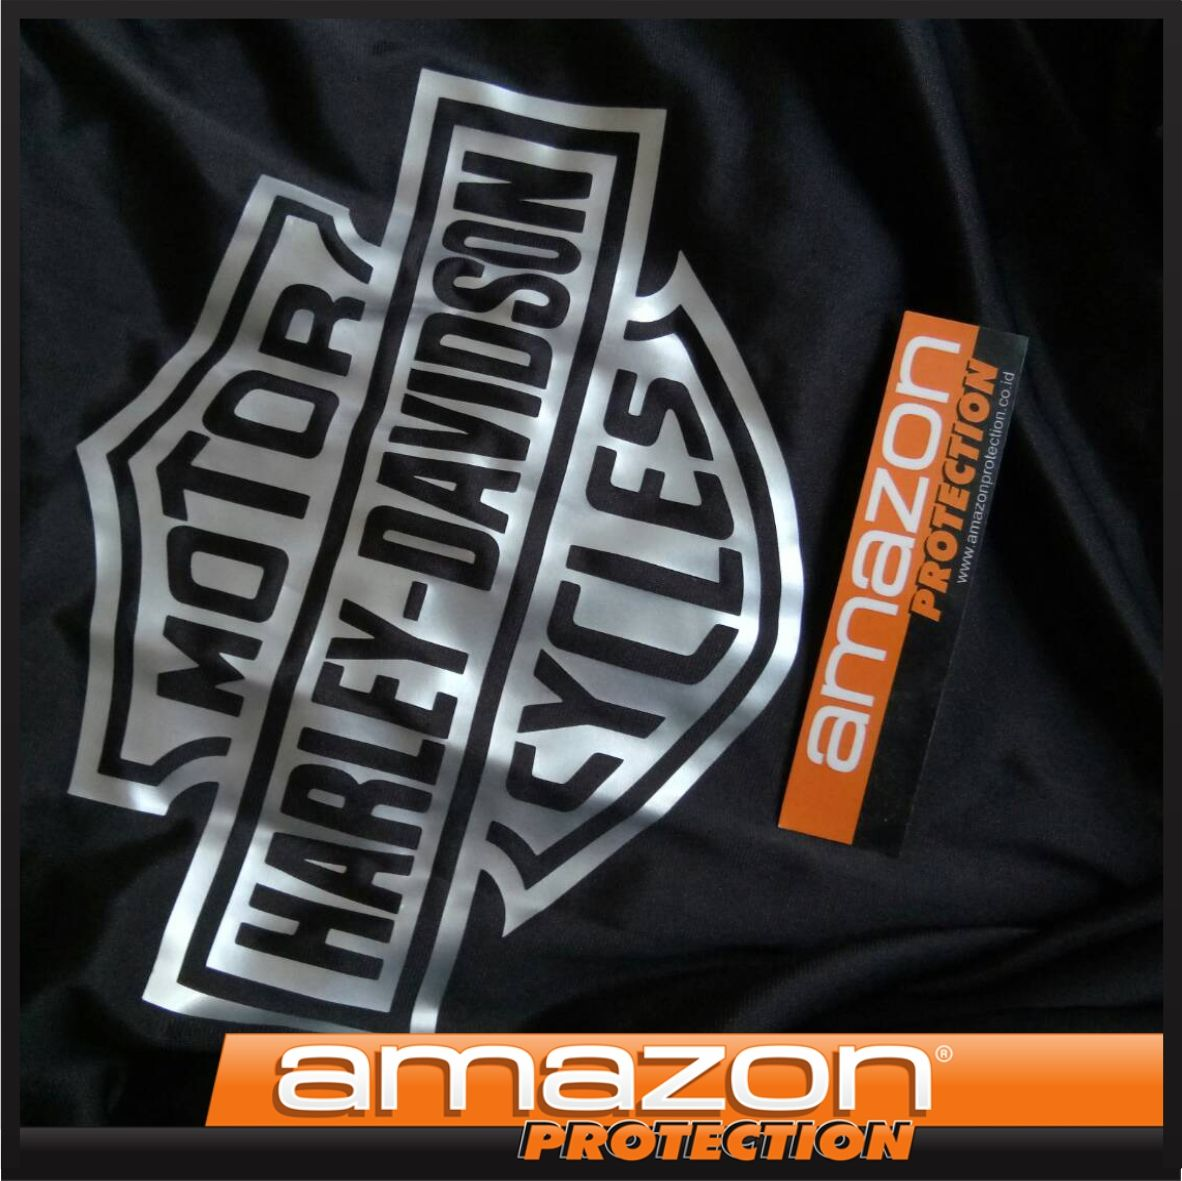 Harley Davidson Premium Motorcycle Cover By Amazon Protection Harley Davidson Harley Motorcycle Cover